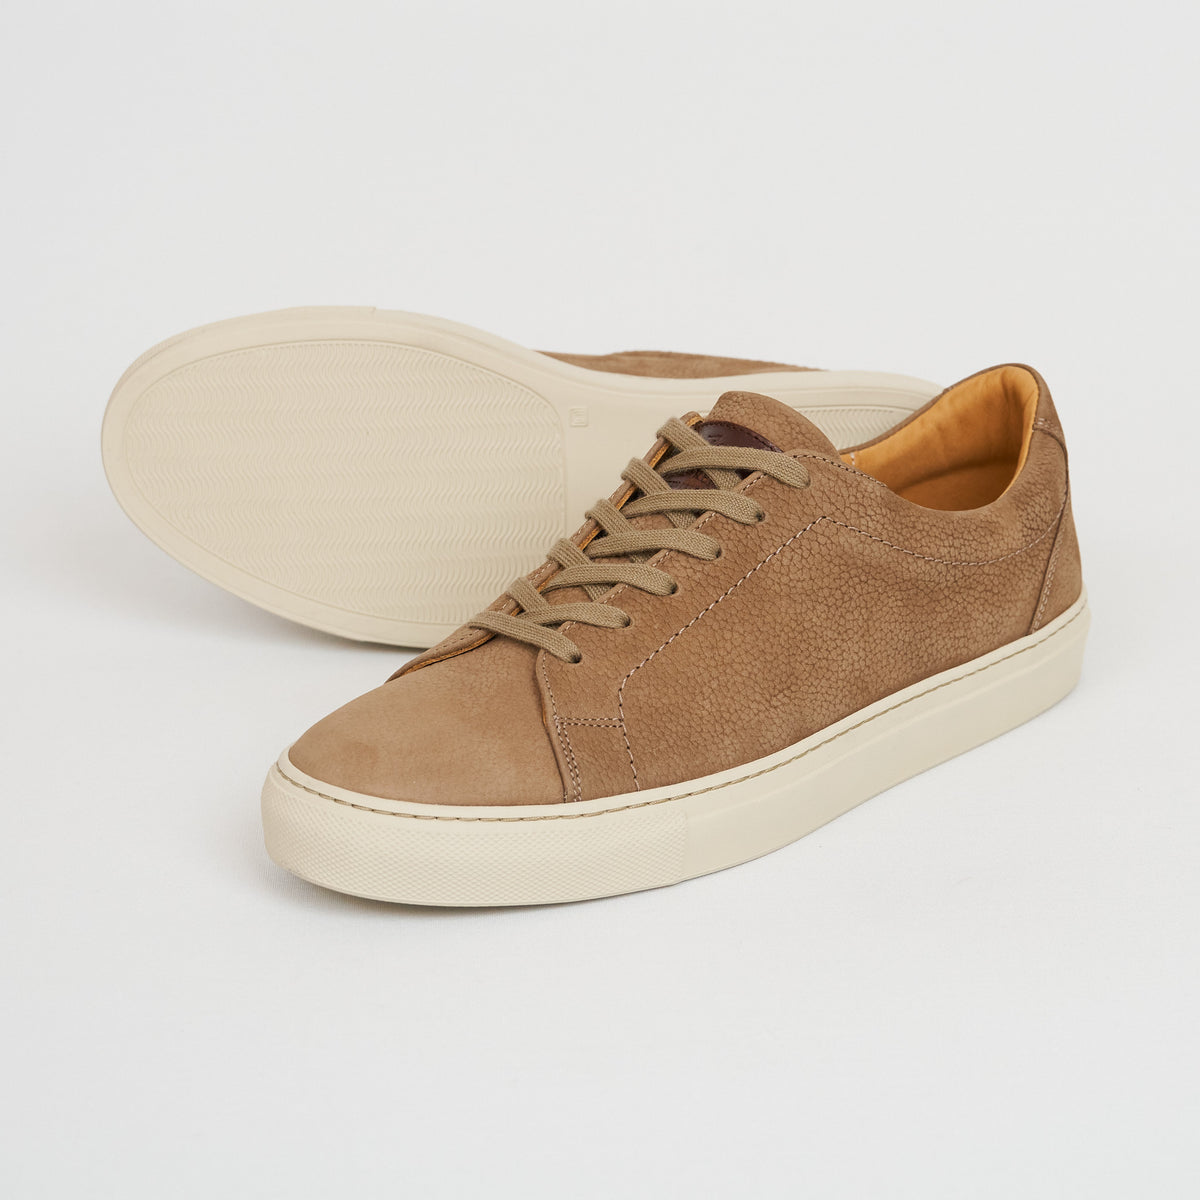 Ludwig Reiter Leather Sneakers